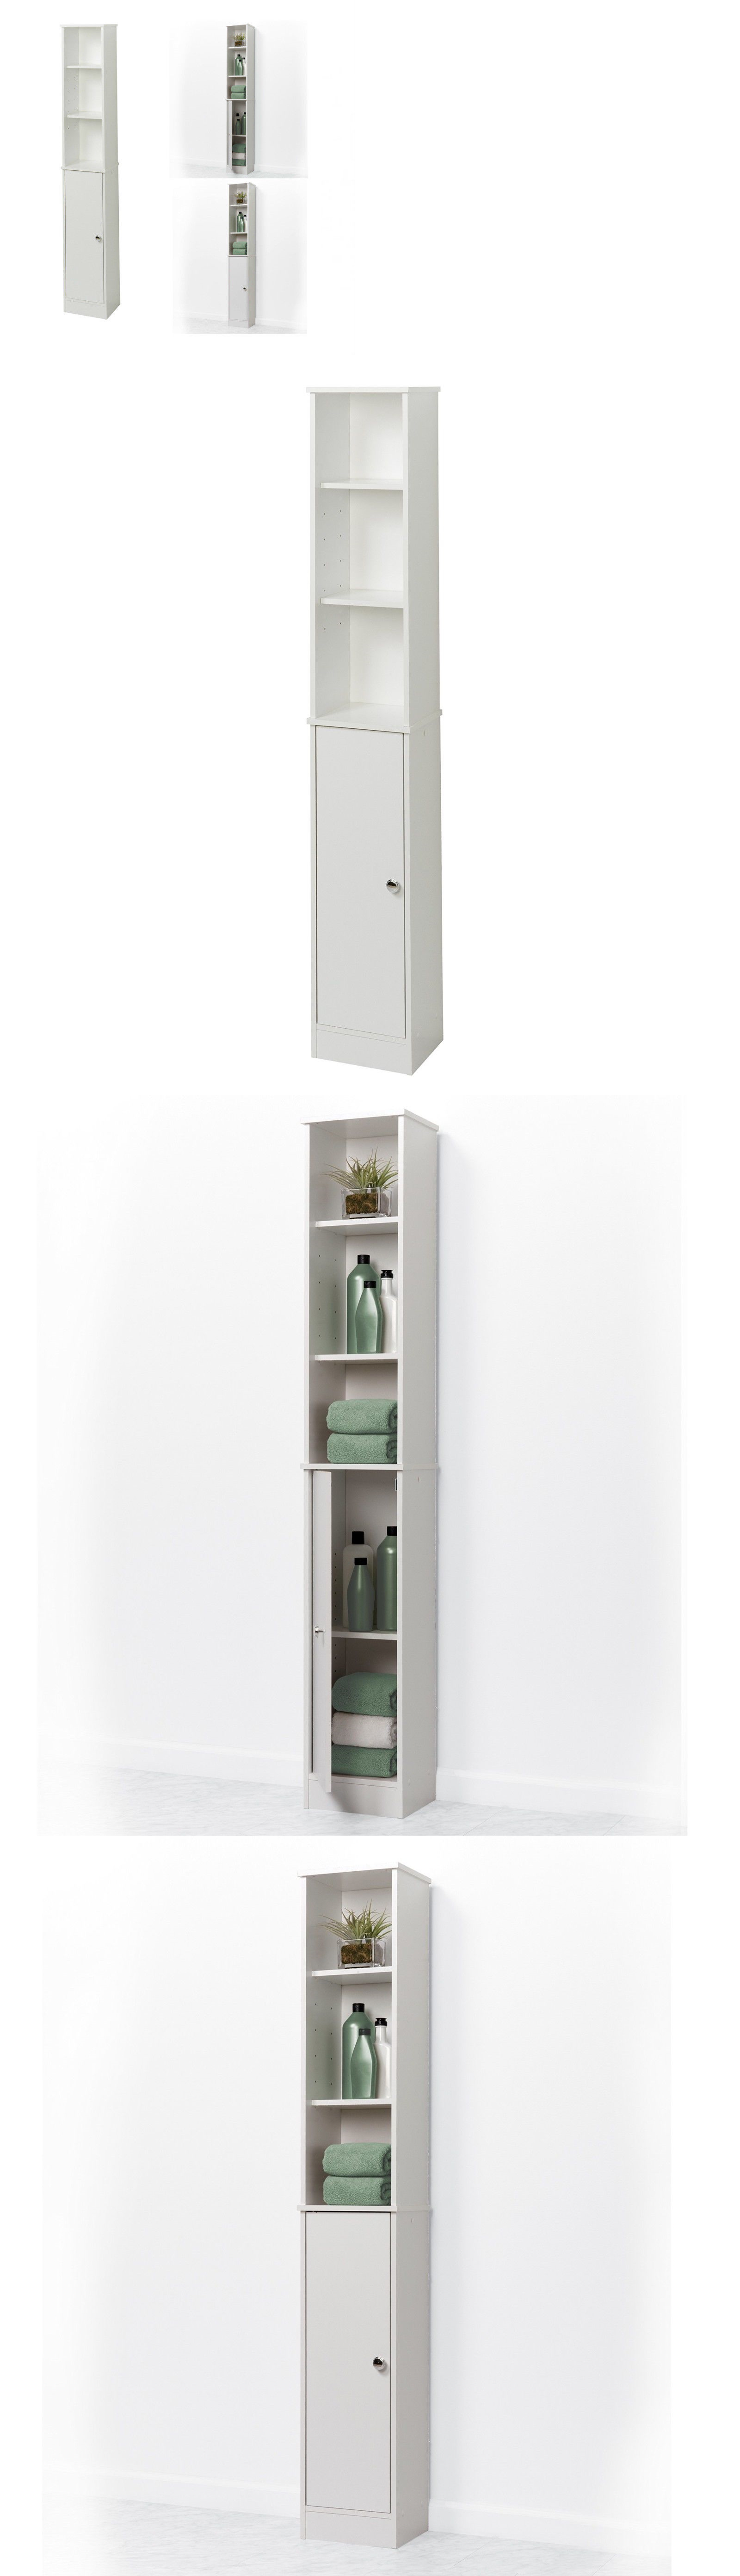 uk on sarmog bathroom slim white cupboard mir shoe cabinettall rack appealing mirrored units fabulous with tall mirror photo cabinet corner ikea x doors godmorgon mesmerizing